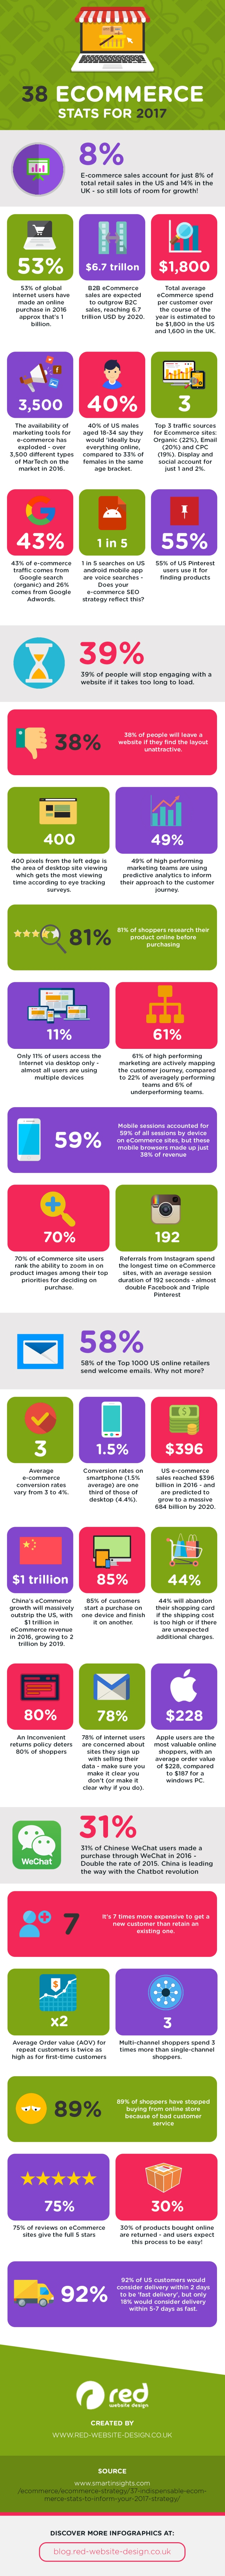 ecommerce trends info